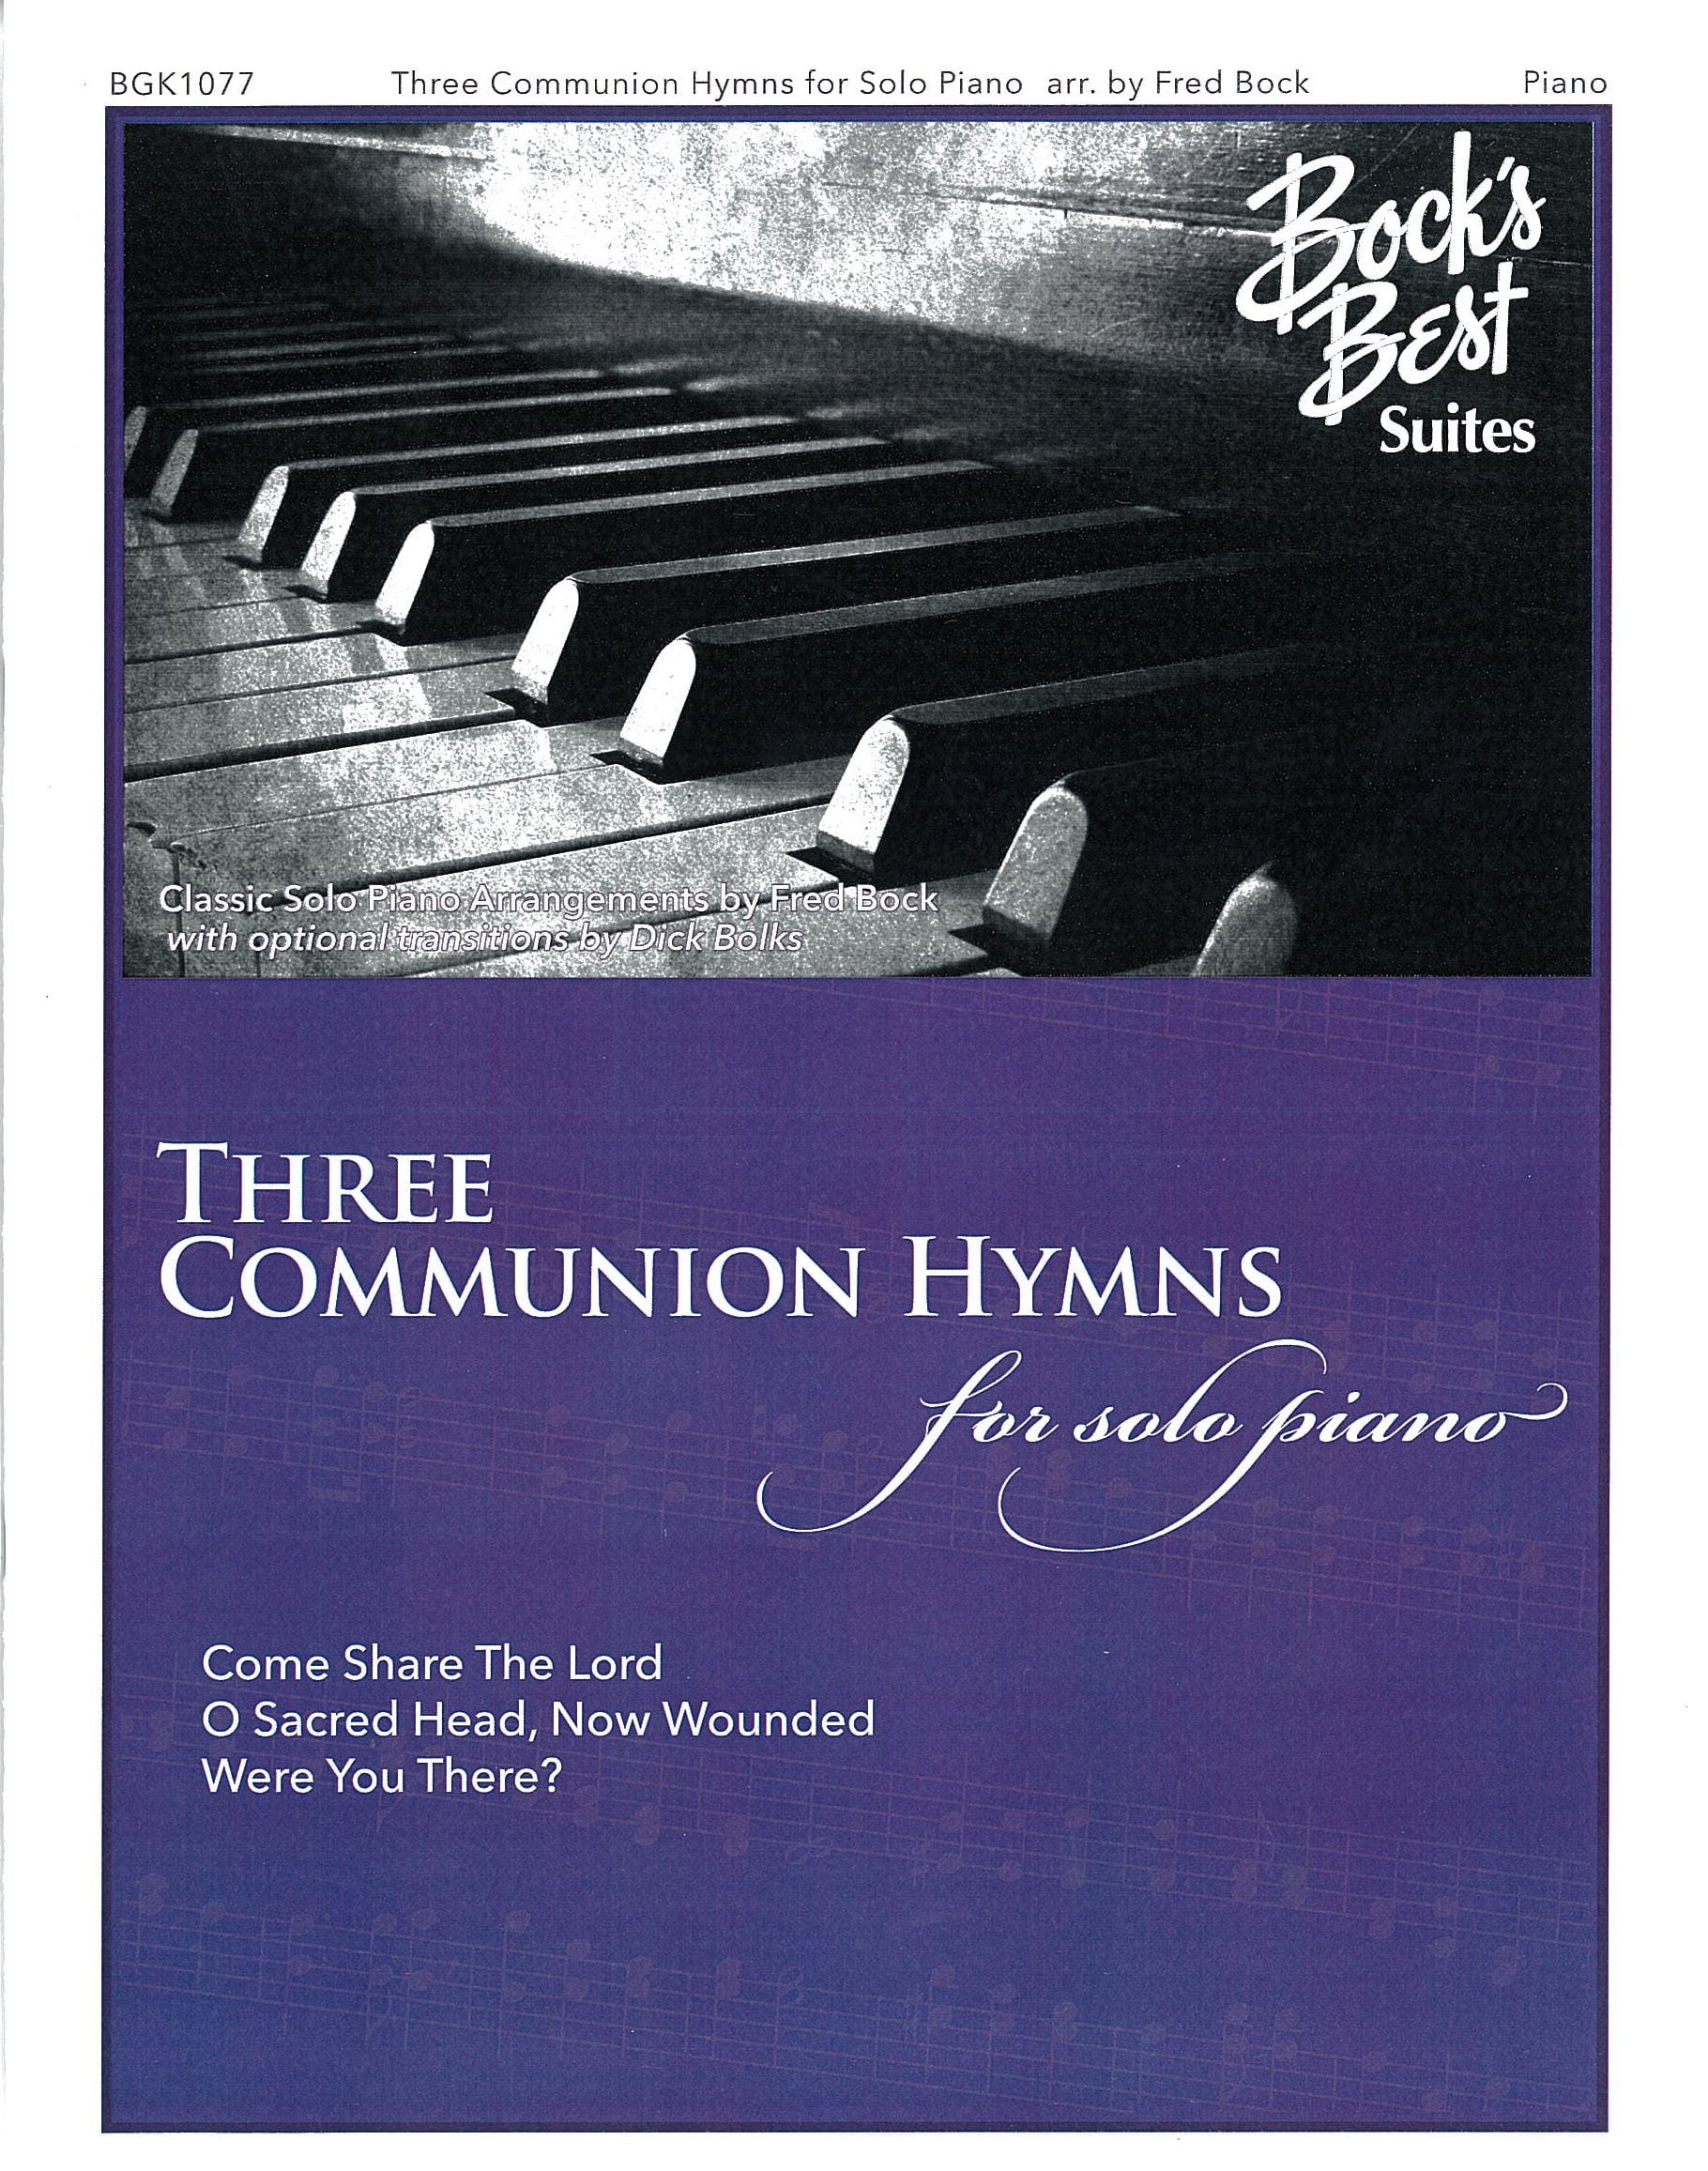 Three Communion Hymns